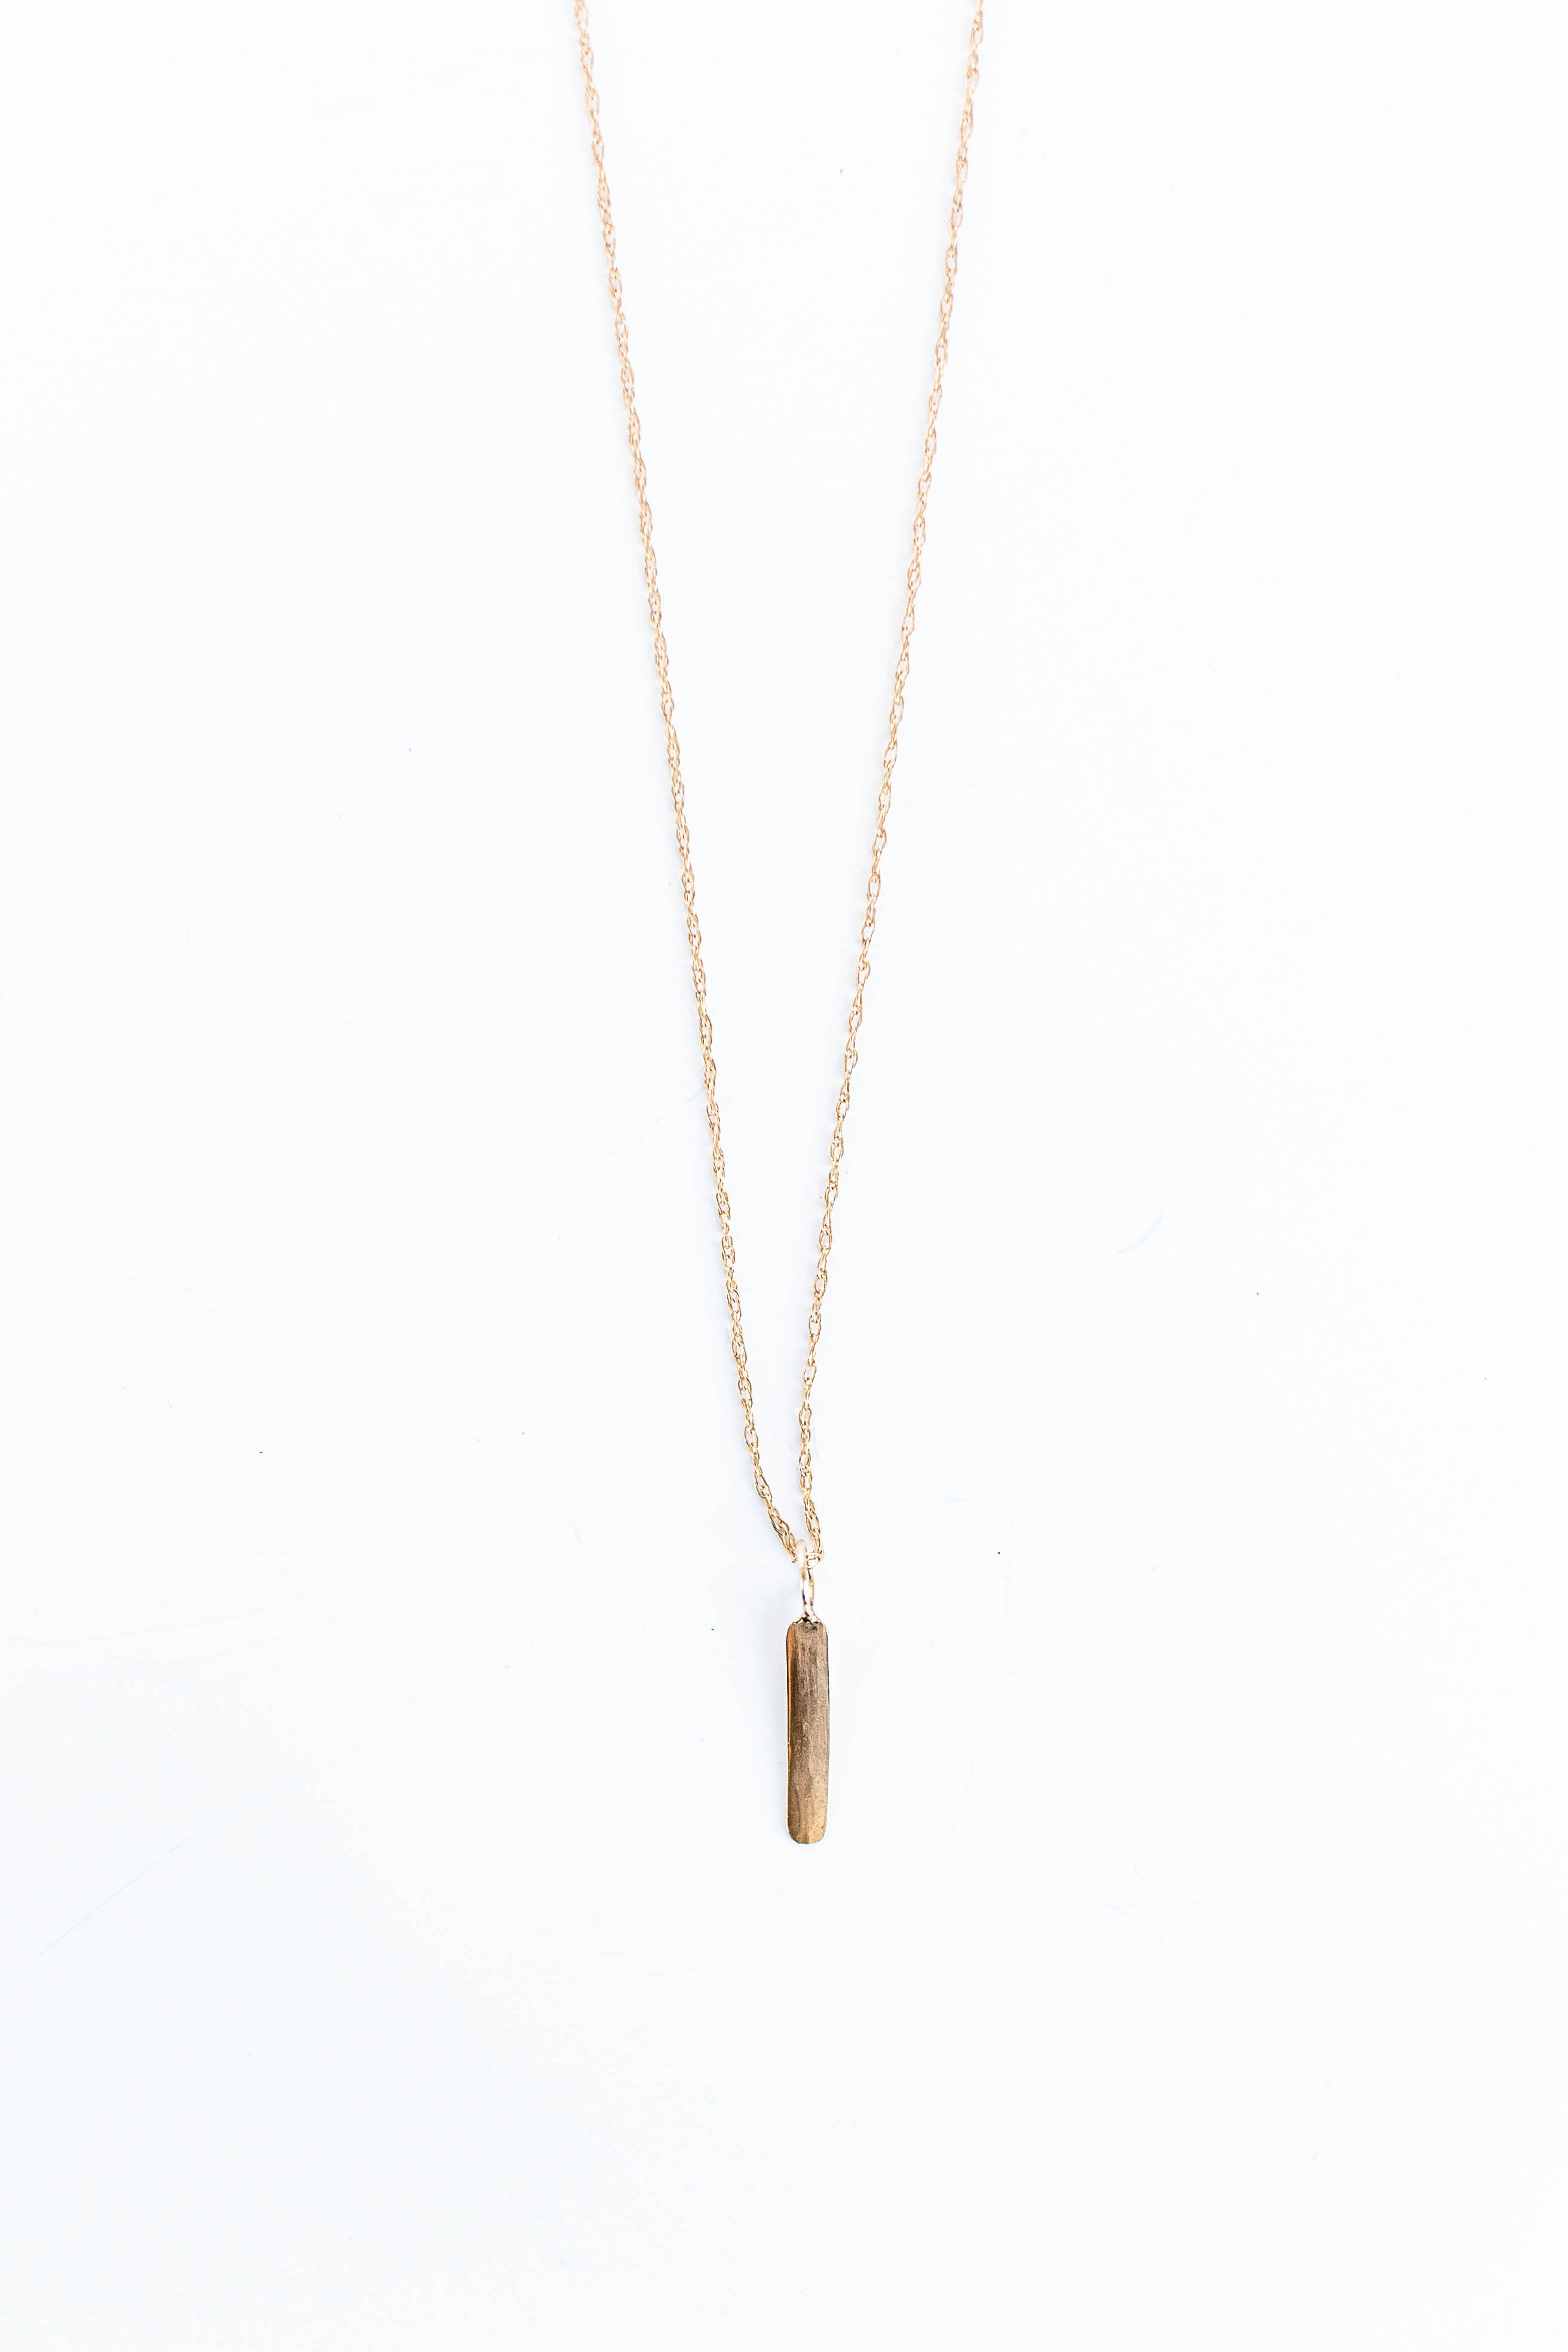 BLANCA MONROS GOMEZ - VERTICAL ID NECKLACE WITH CHAIN